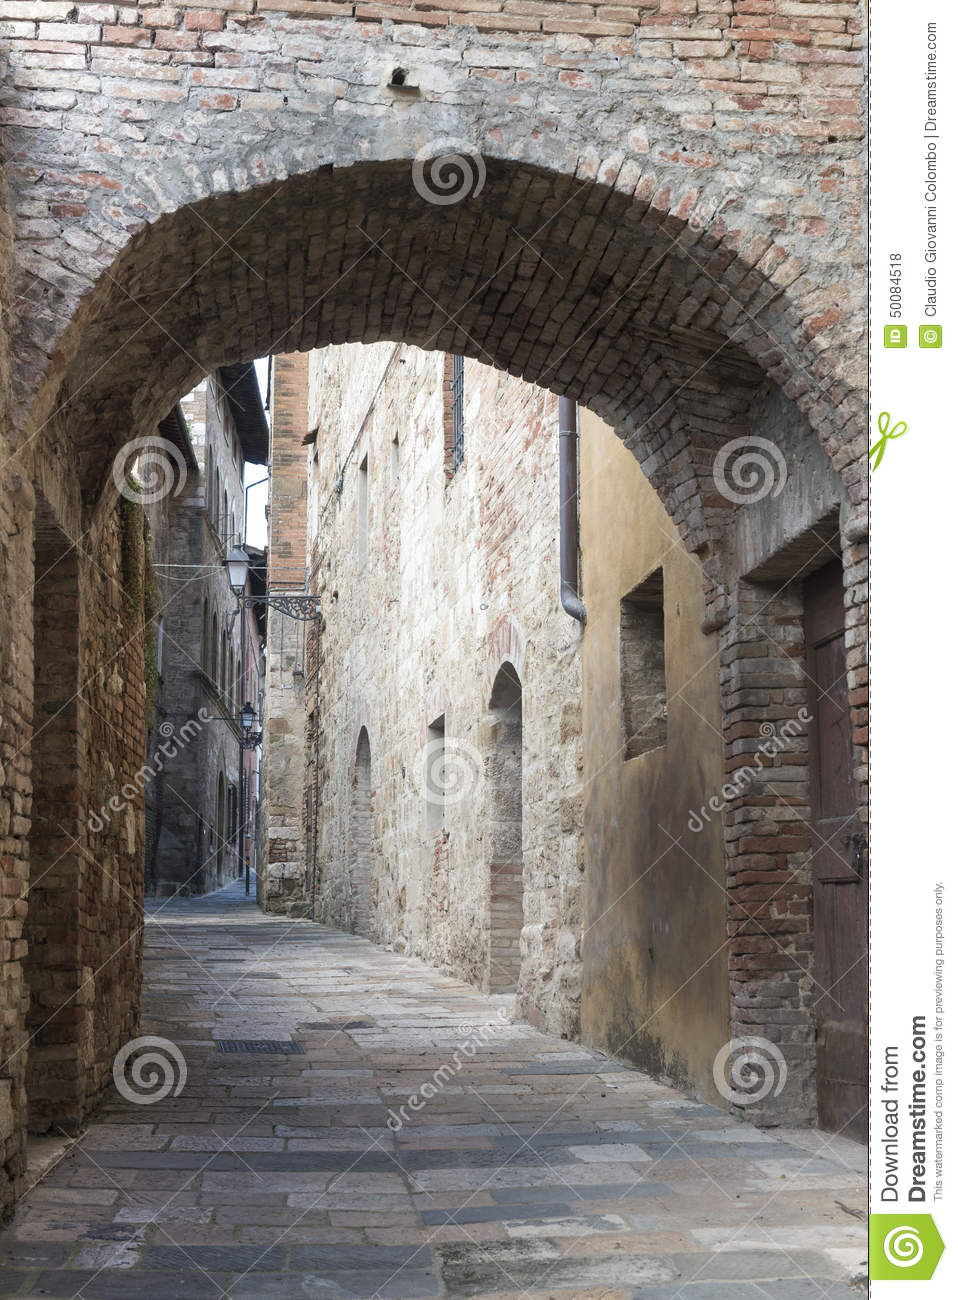 Colle Val D'Elsa Italy  City pictures : Colle di Val d'Elsa Siena, Tuscany, Italy , historic city.